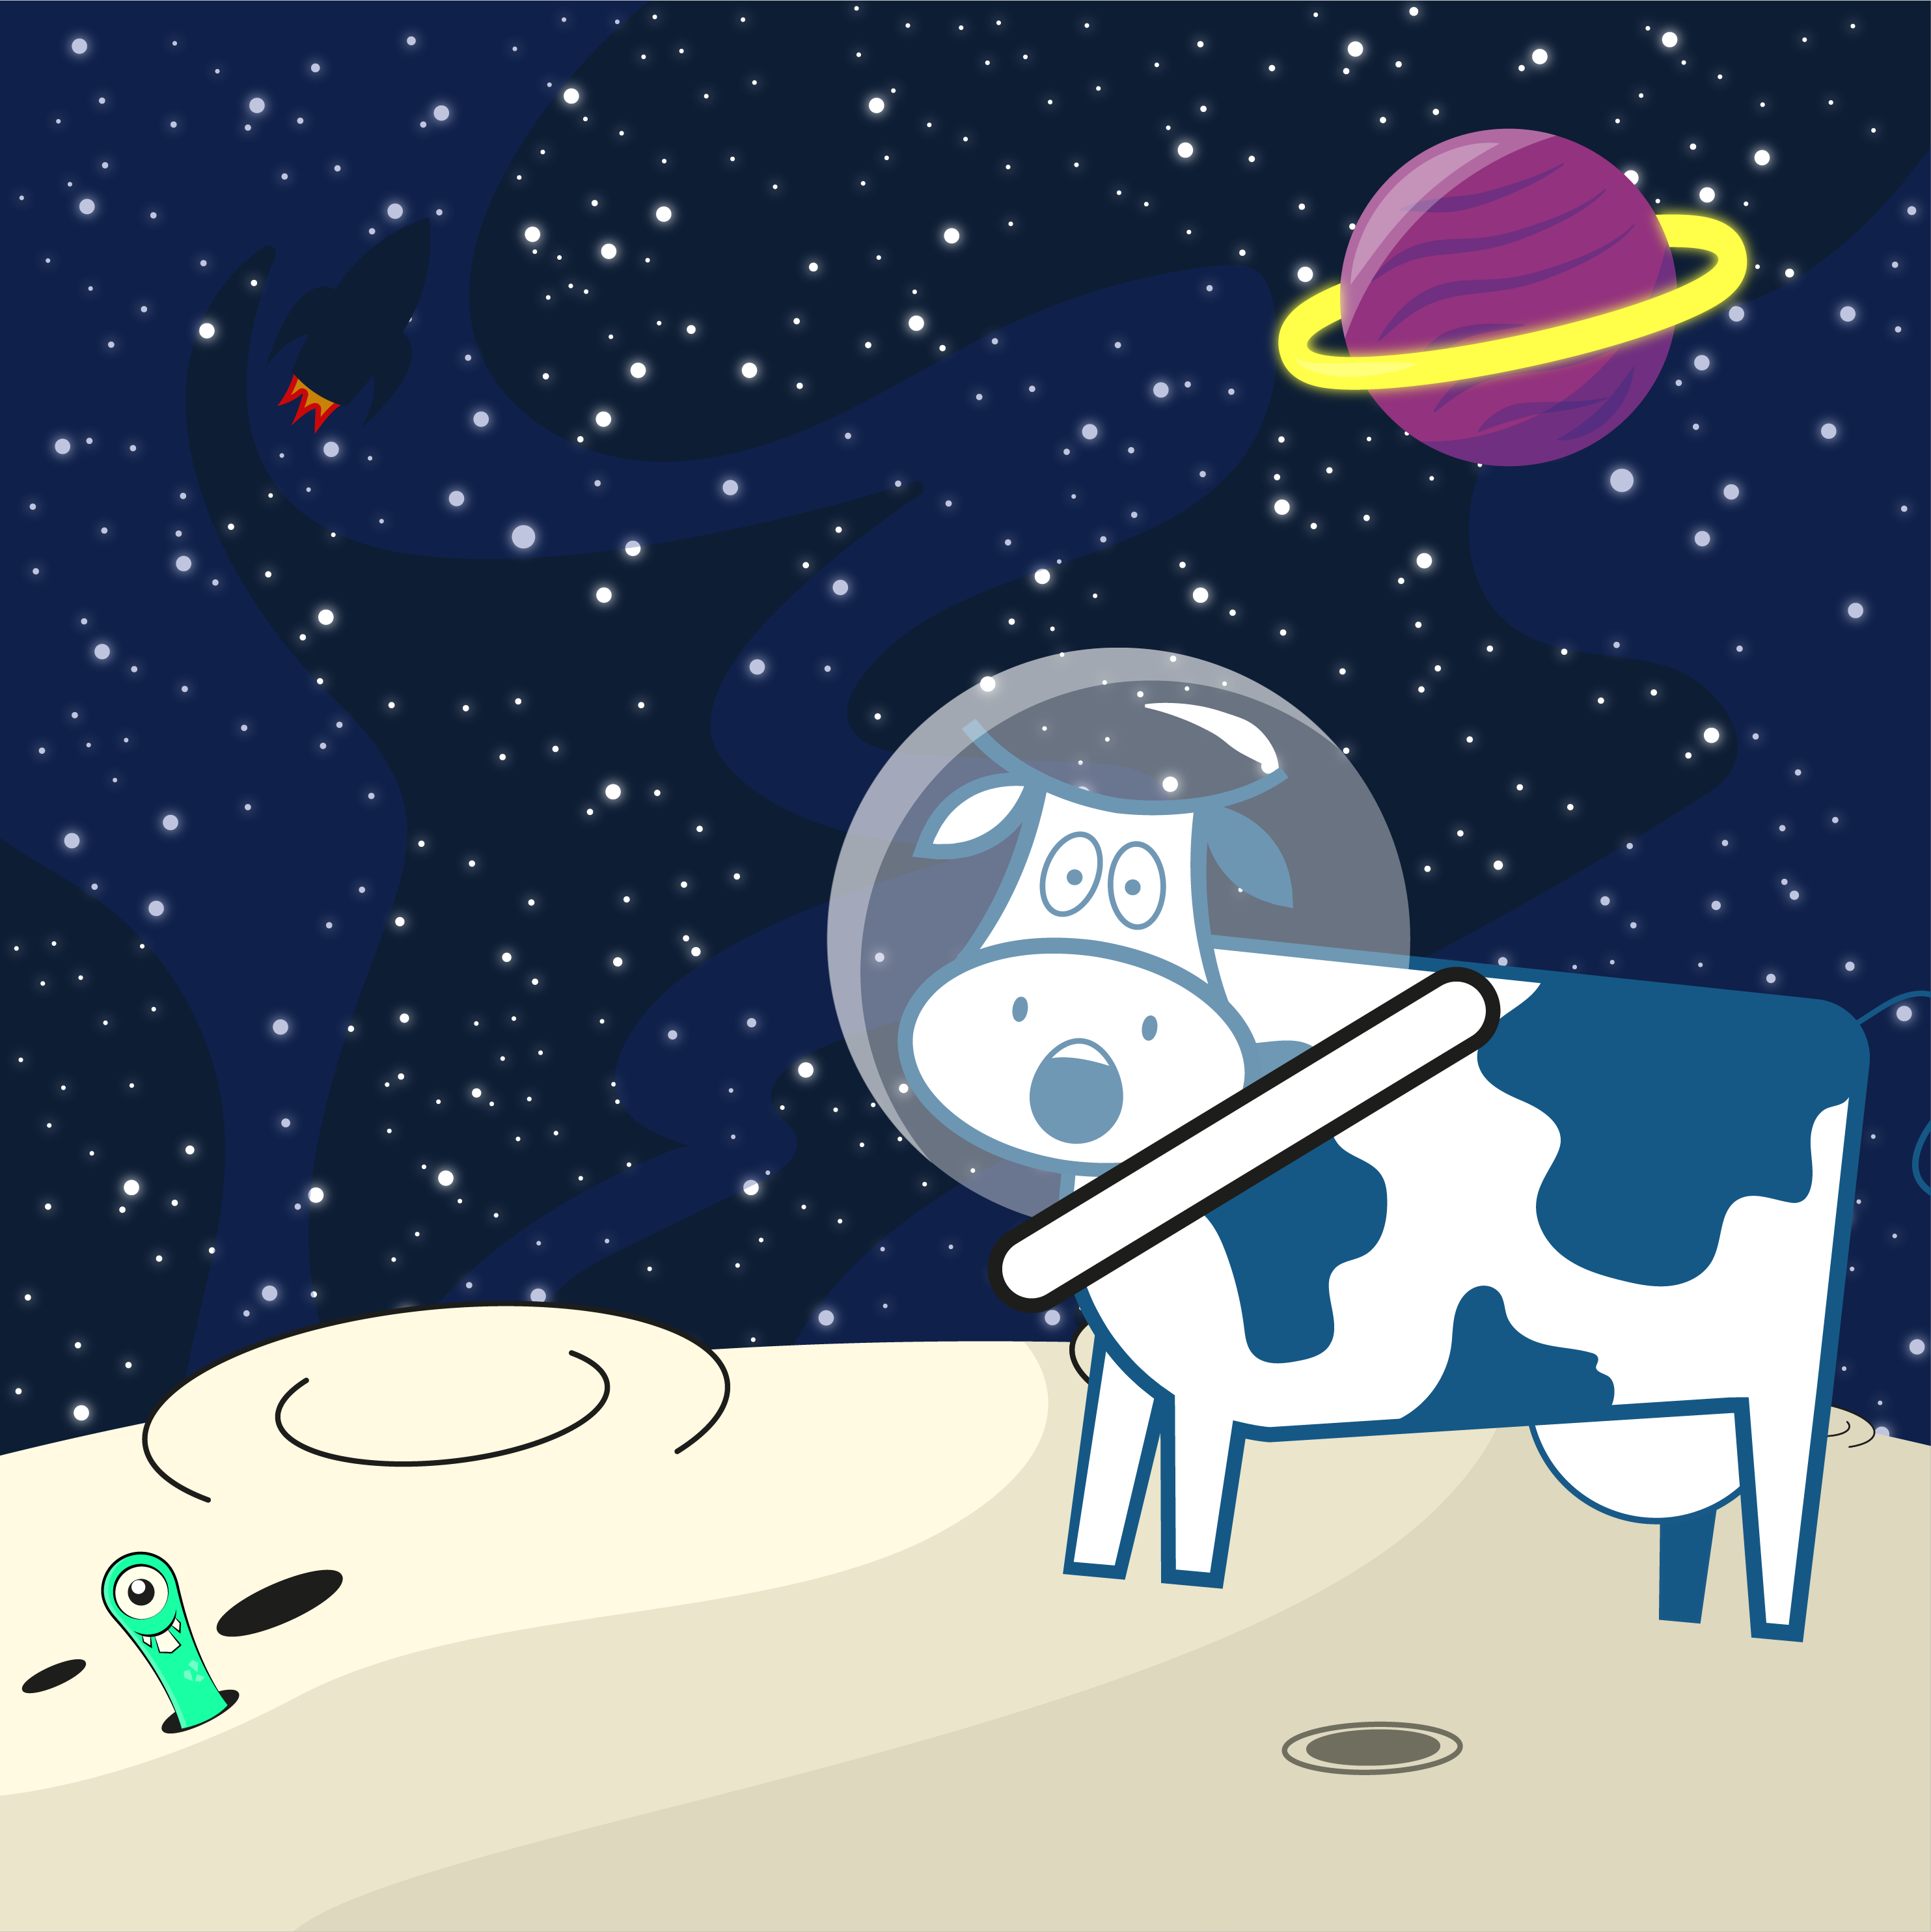 Maisie & The Out of This World Adventure!